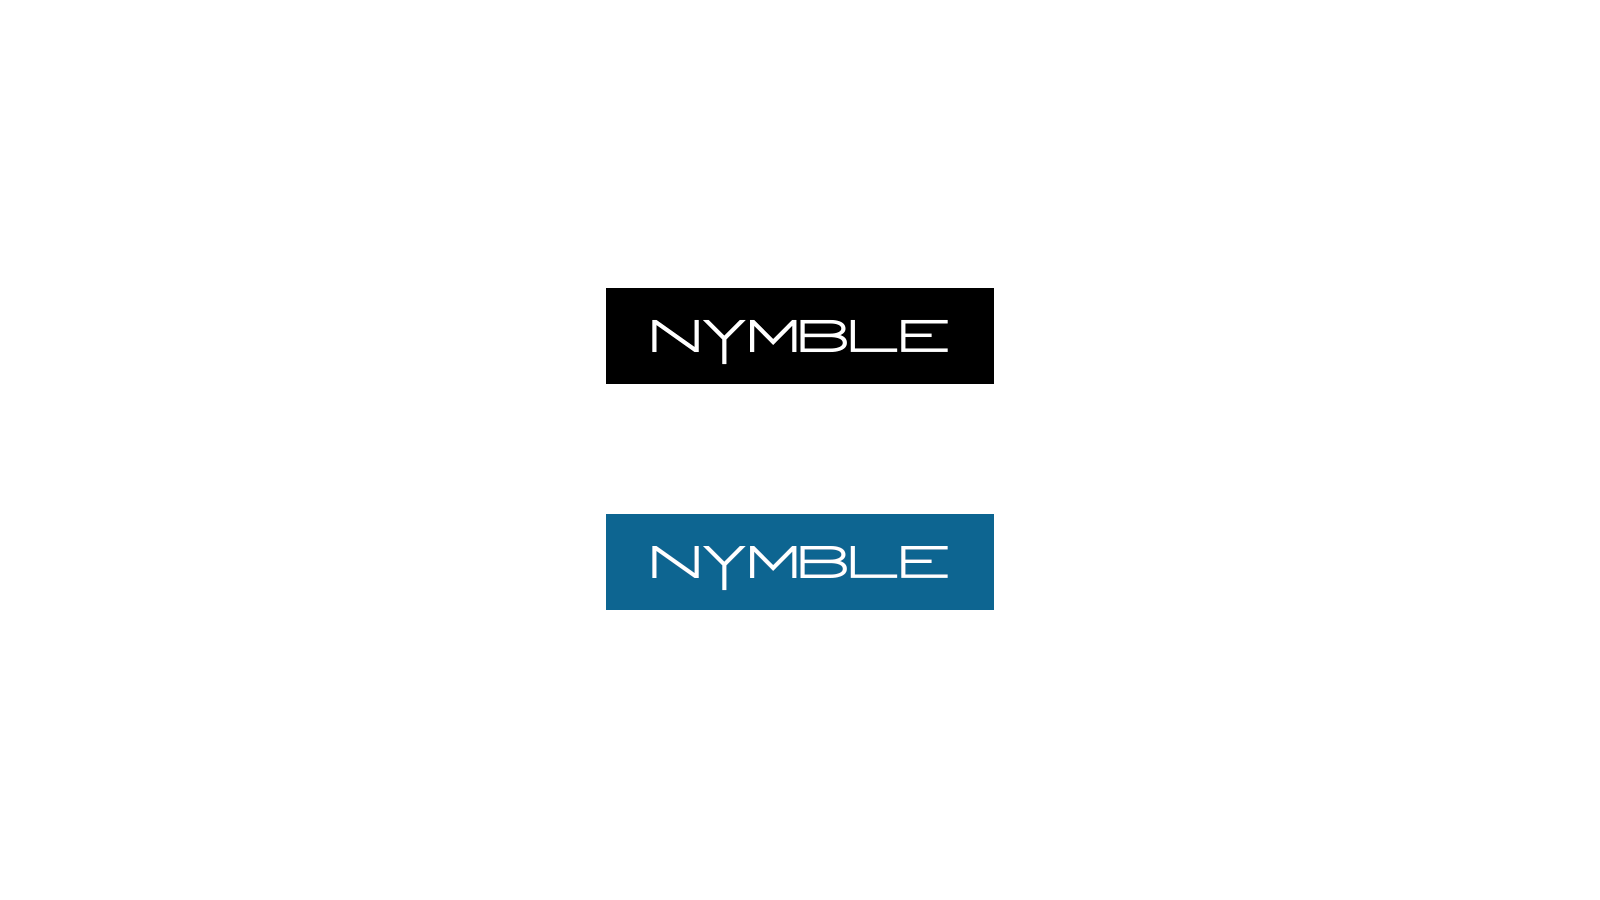 Nymble 3.png